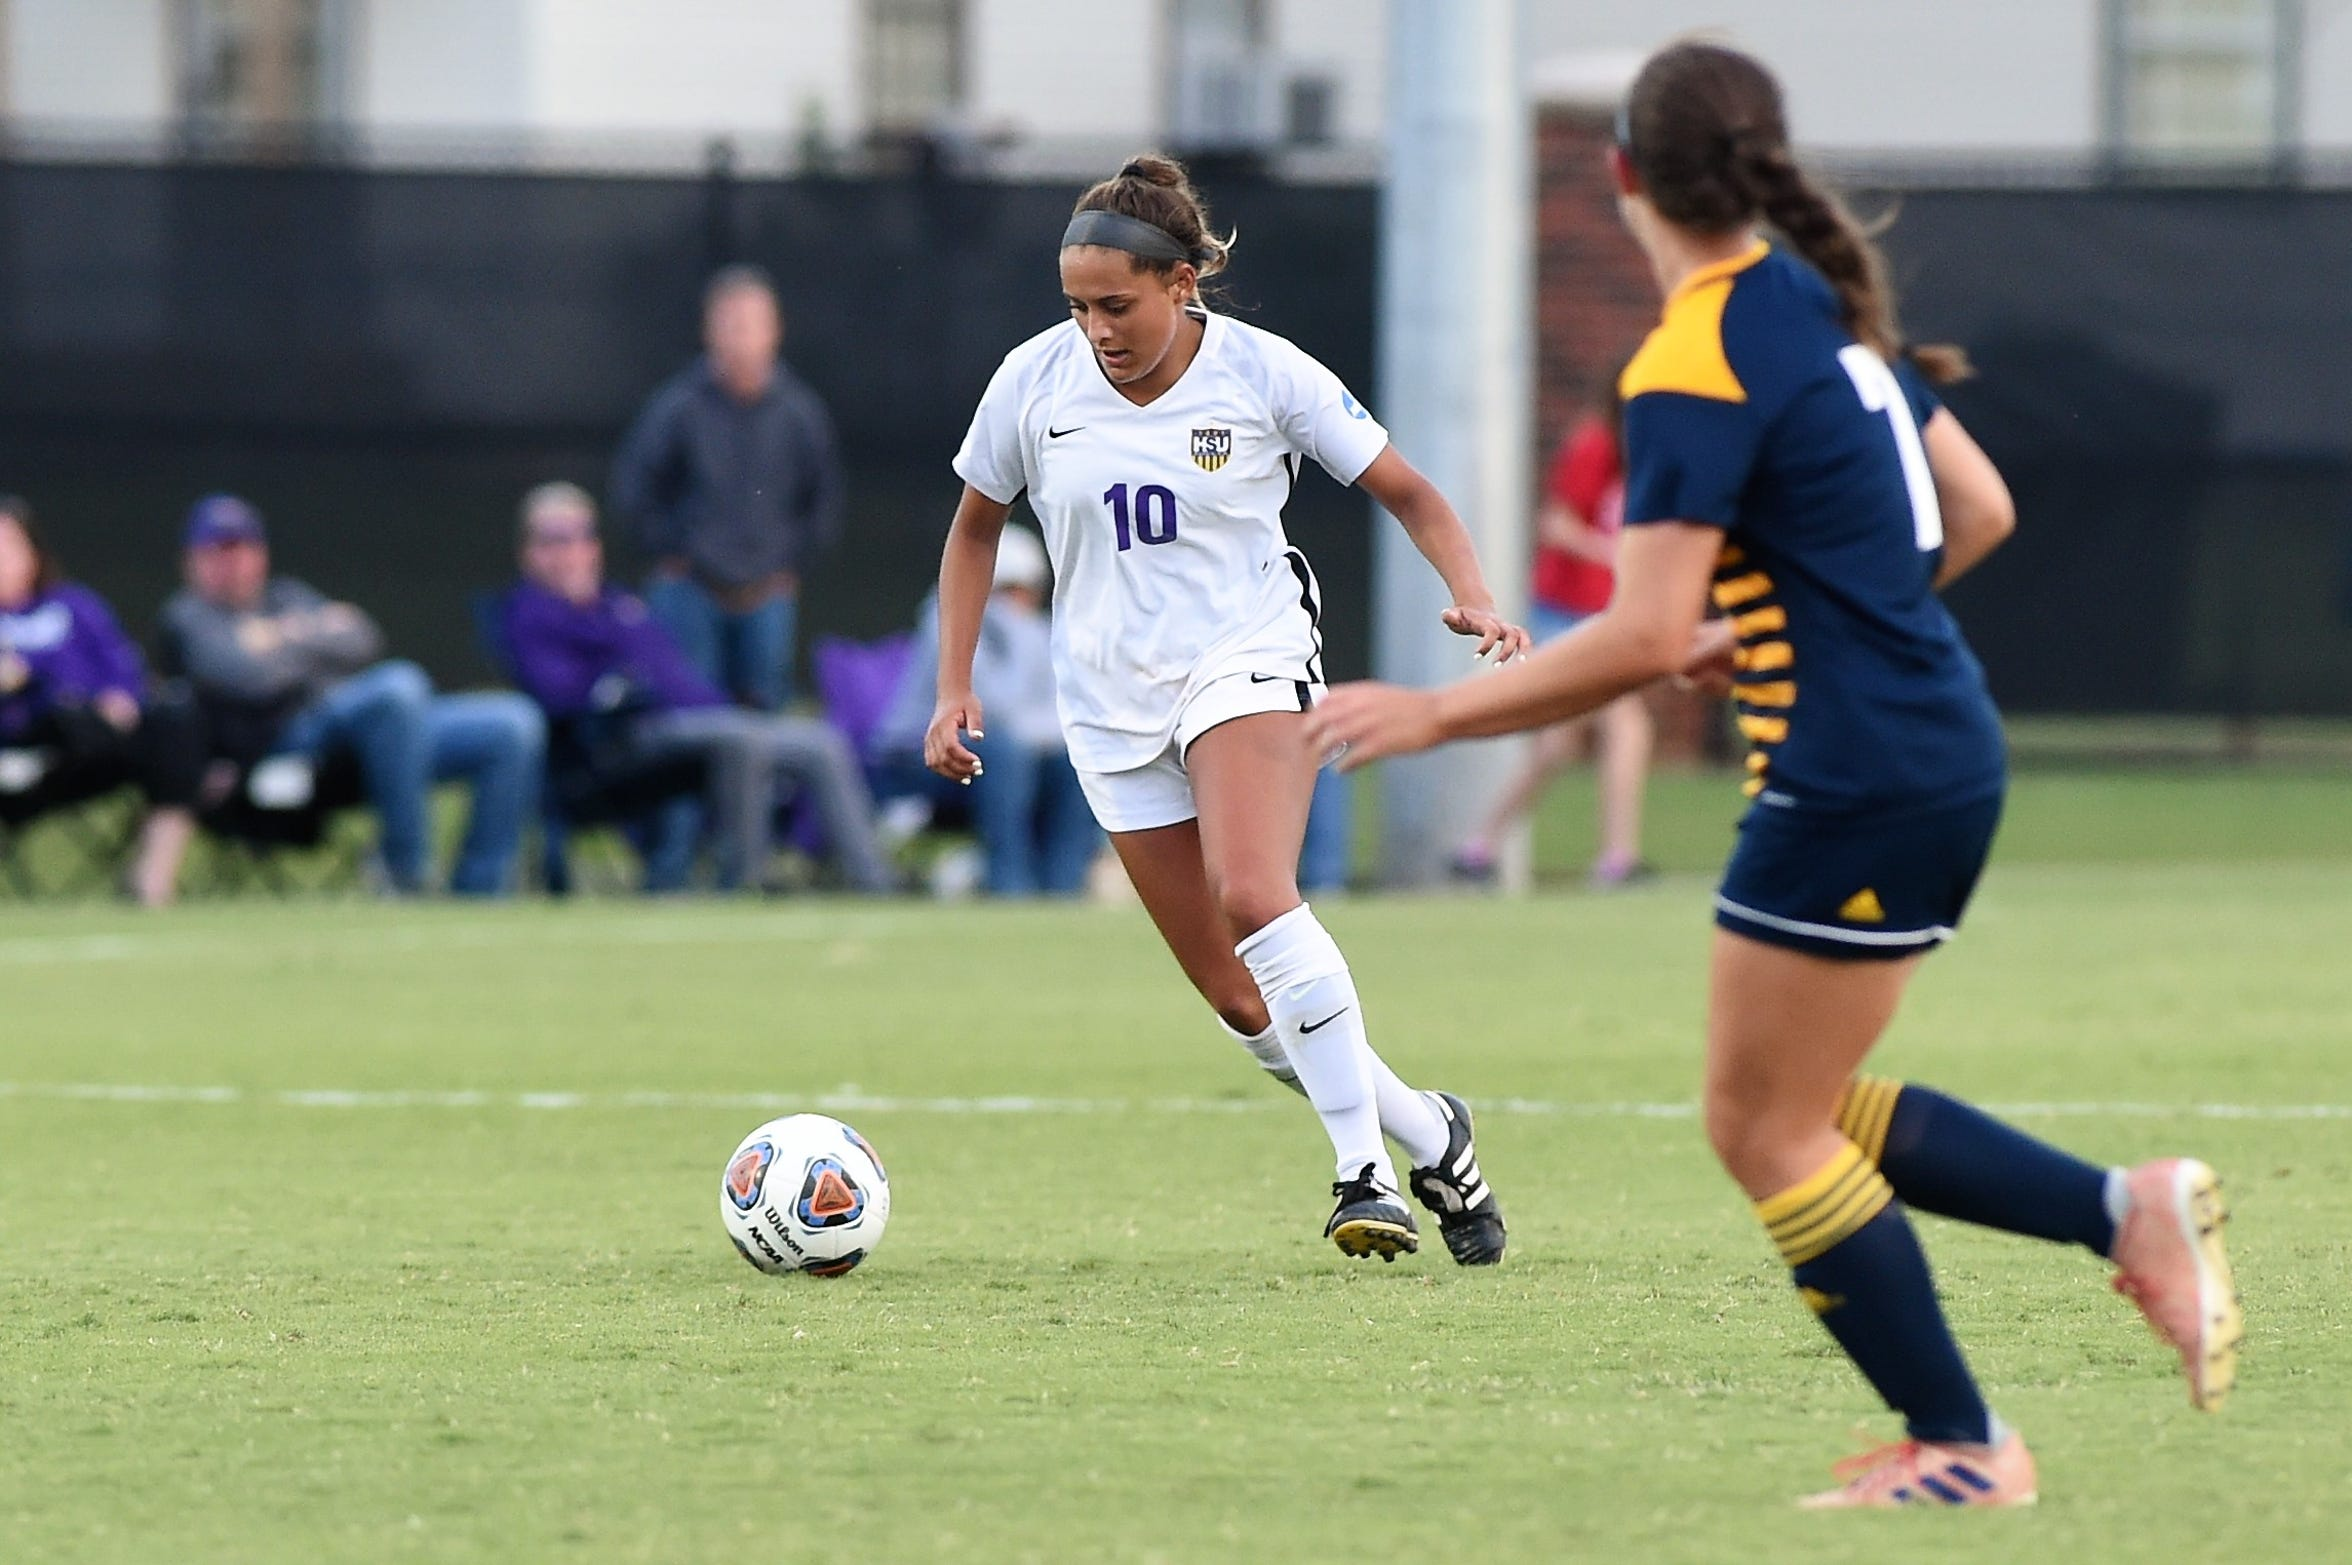 Hardin-Simmons forward Randie Dennison (10) played in all 18 games, with starts in 14 this season as a freshman. Dennison, a Wylie graduate, scored 11 goals and was named first team all-conference.